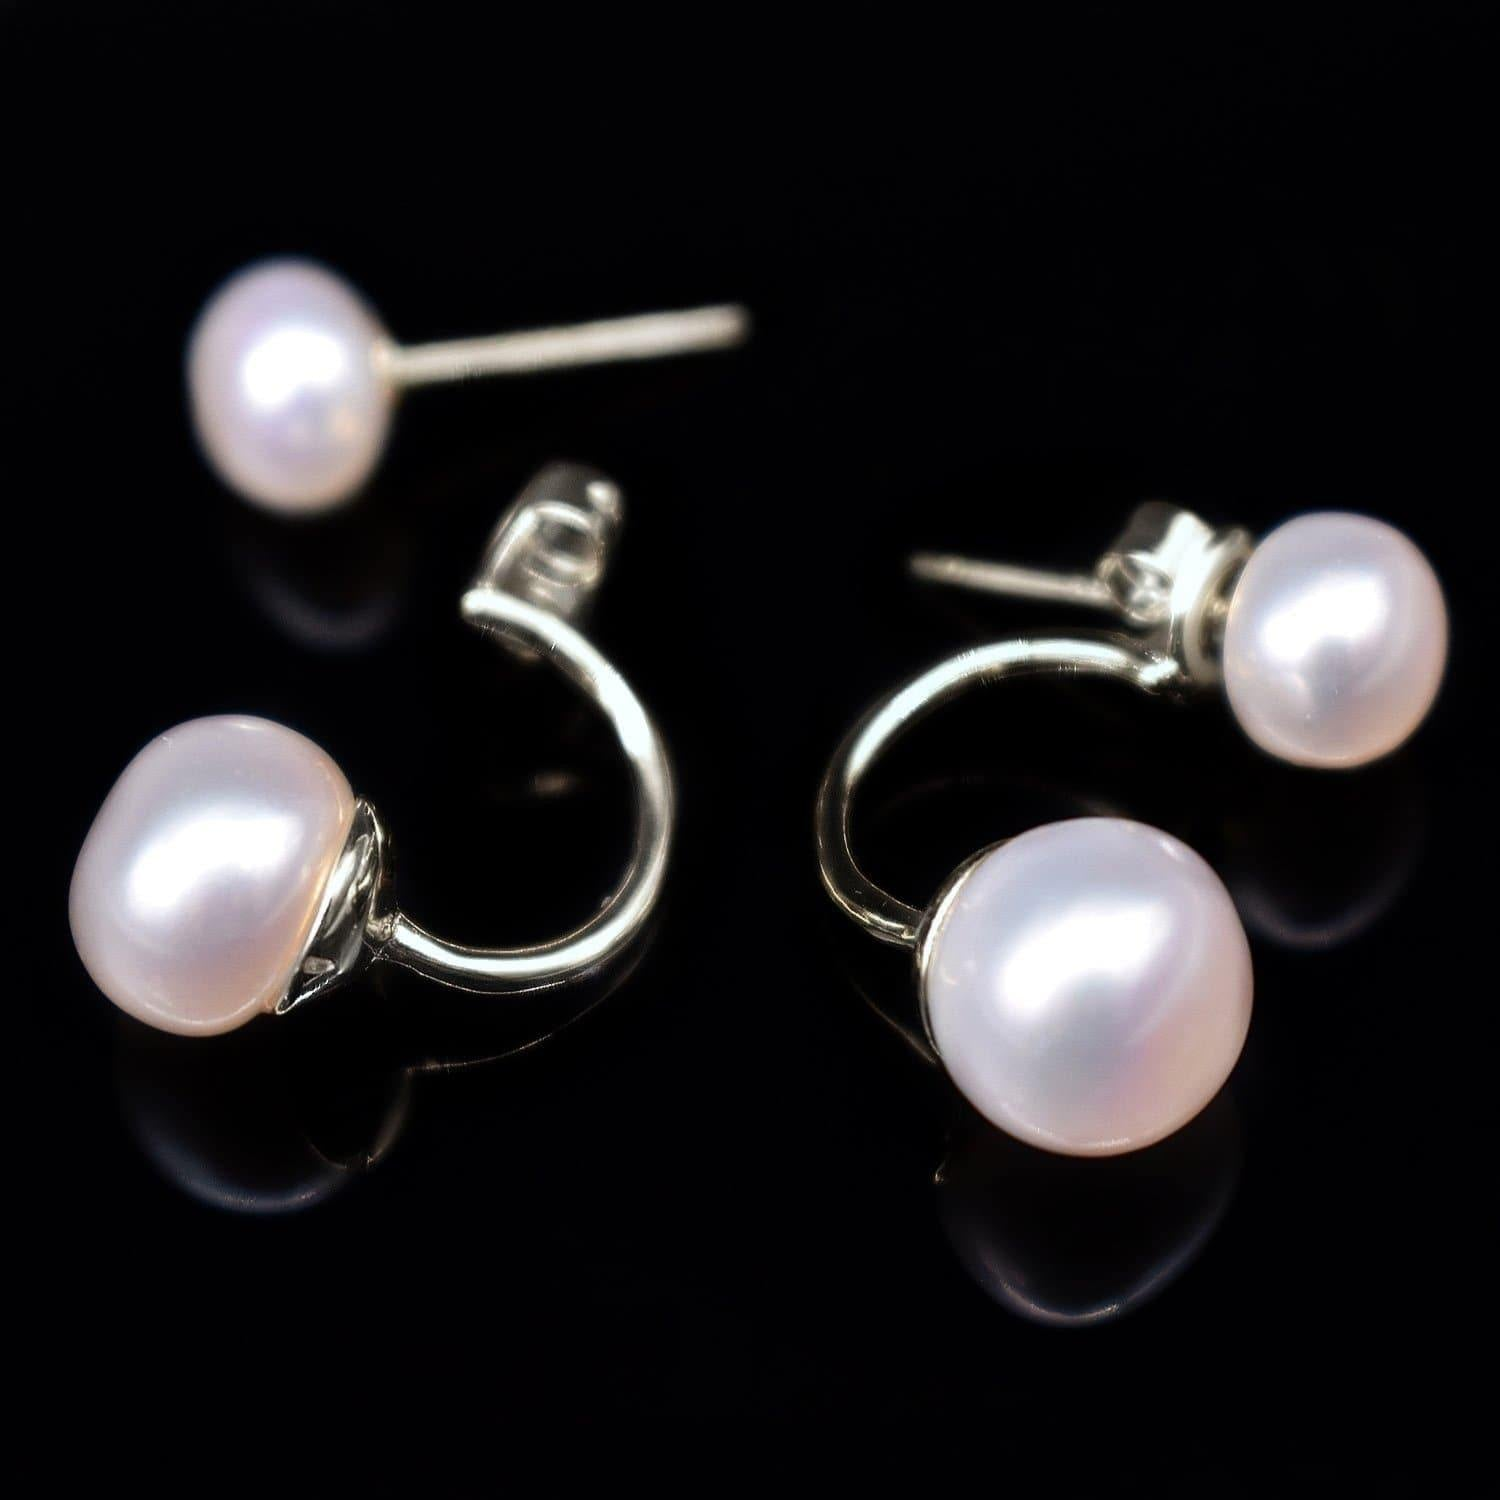 Freshwater Pearl Earrings - Dara | Akuna Pearls | Freshwater Pearl Jewellery | Made in Australia